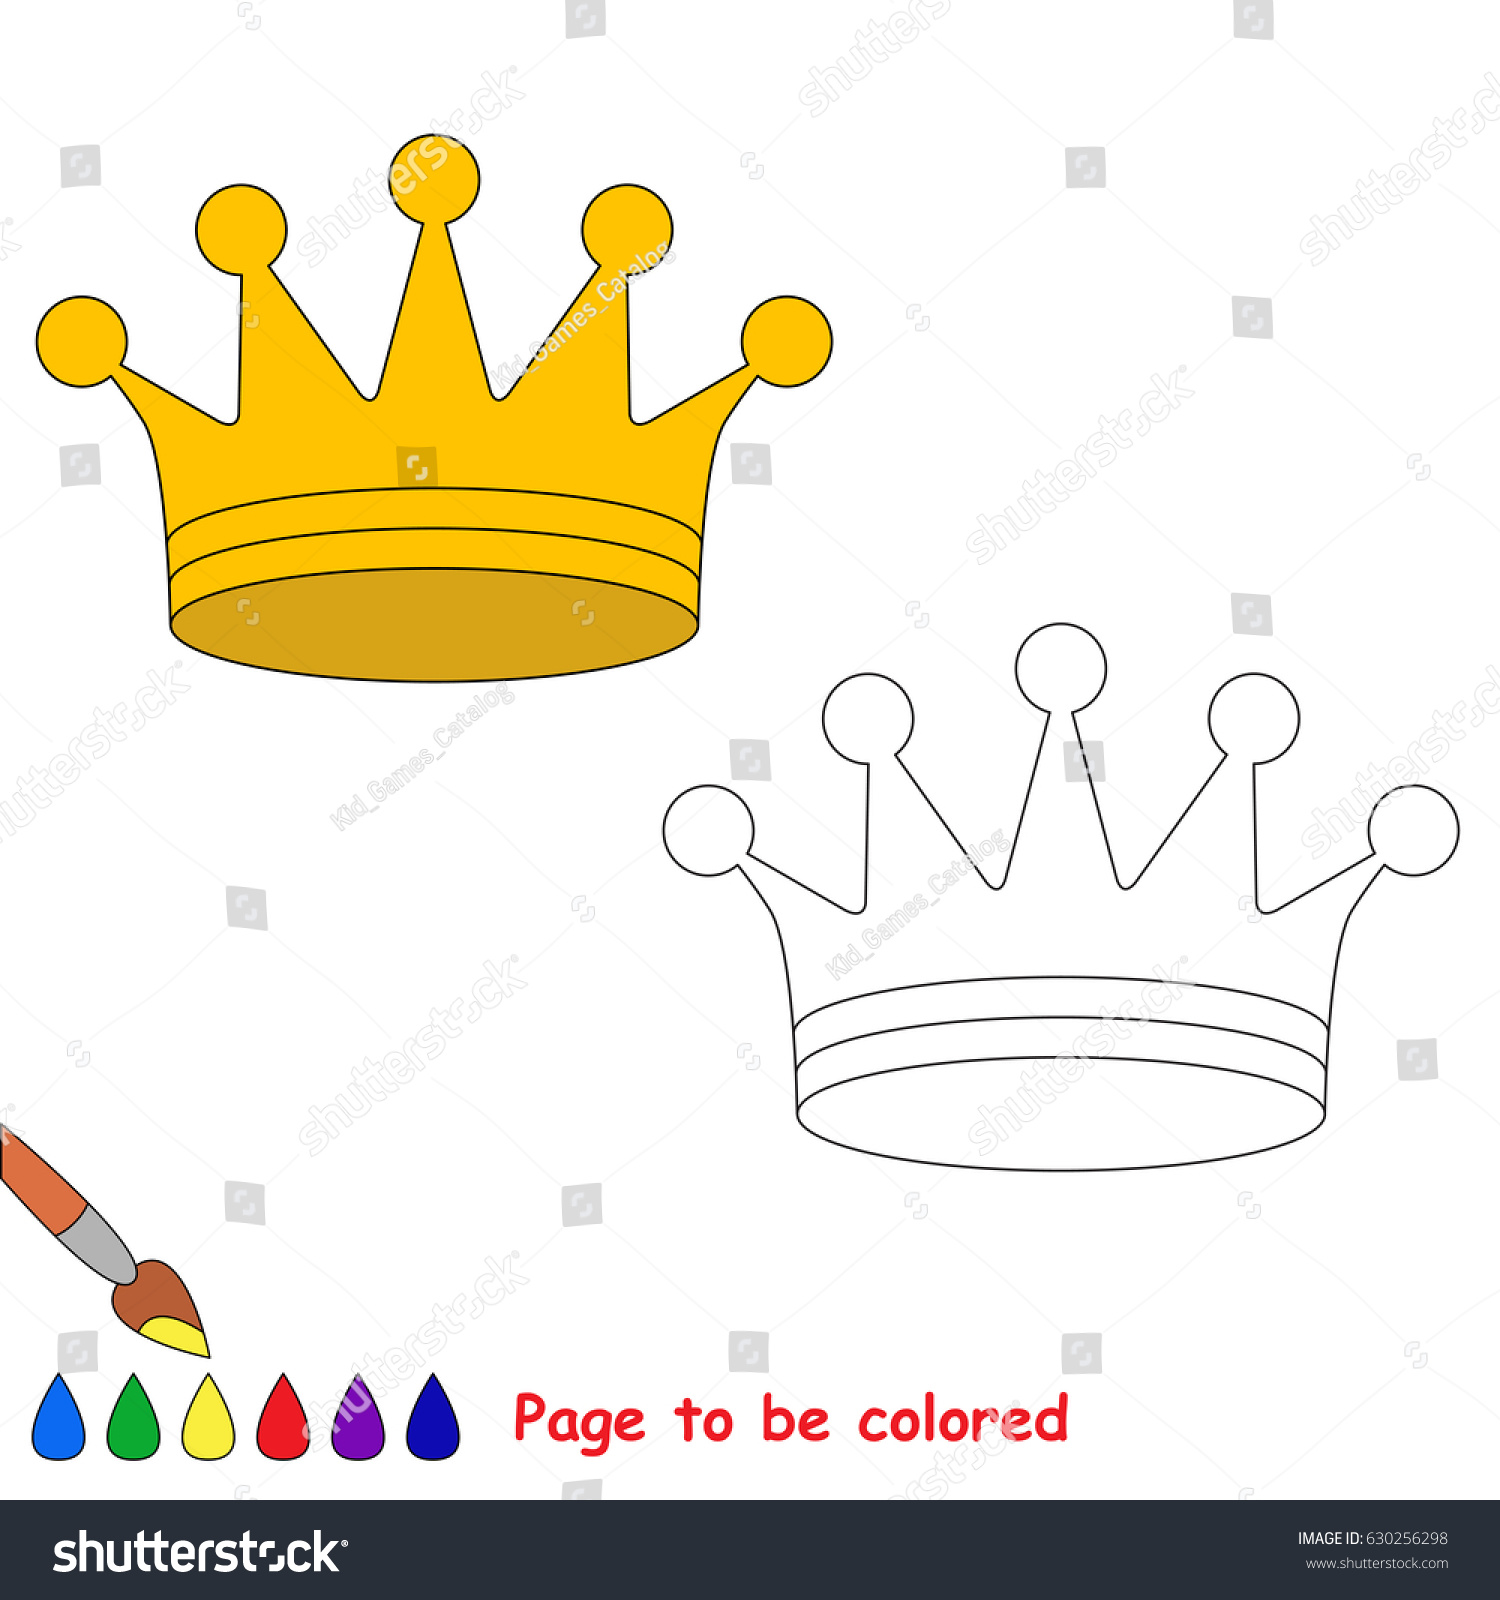 Coloring book princess crowns - Princess Crown To Be Colored The Coloring Book For Preschool Kids With Easy Educational Gaming